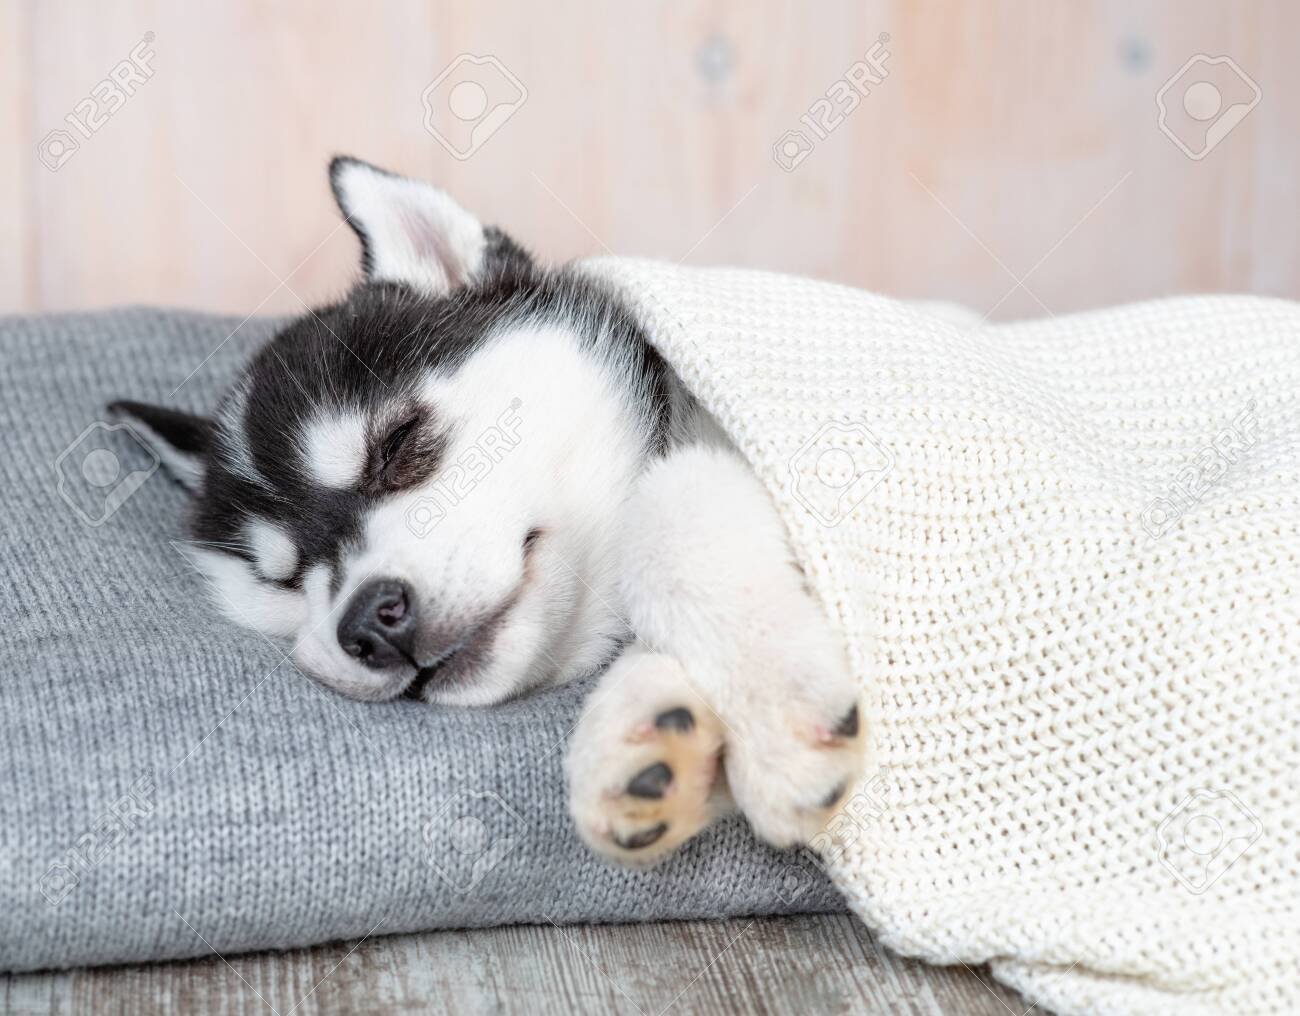 Sleeping Siberian Husky Puppy Sleep On Pillow Under Blanket Stock Photo Picture And Royalty Free Image Image 146540747